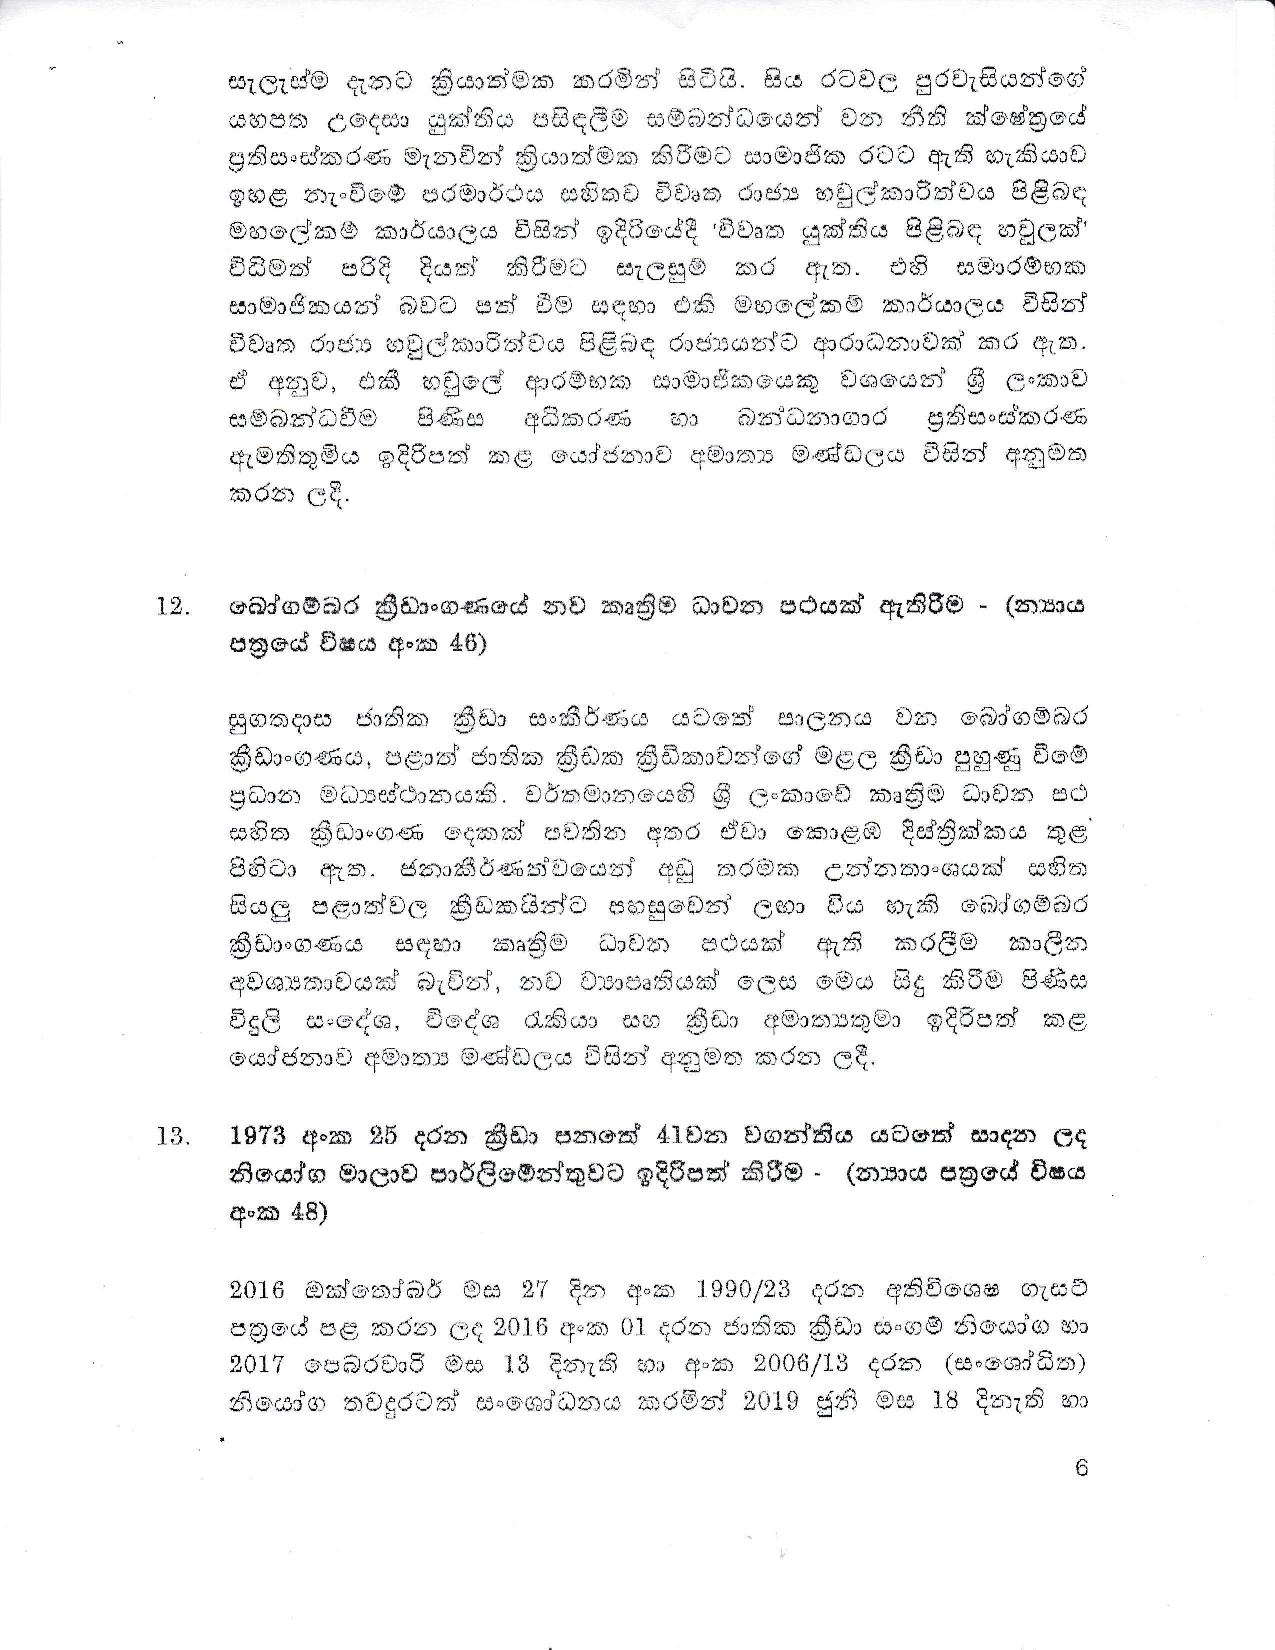 Cabinet Decision on 20.08.2019 1 page 006